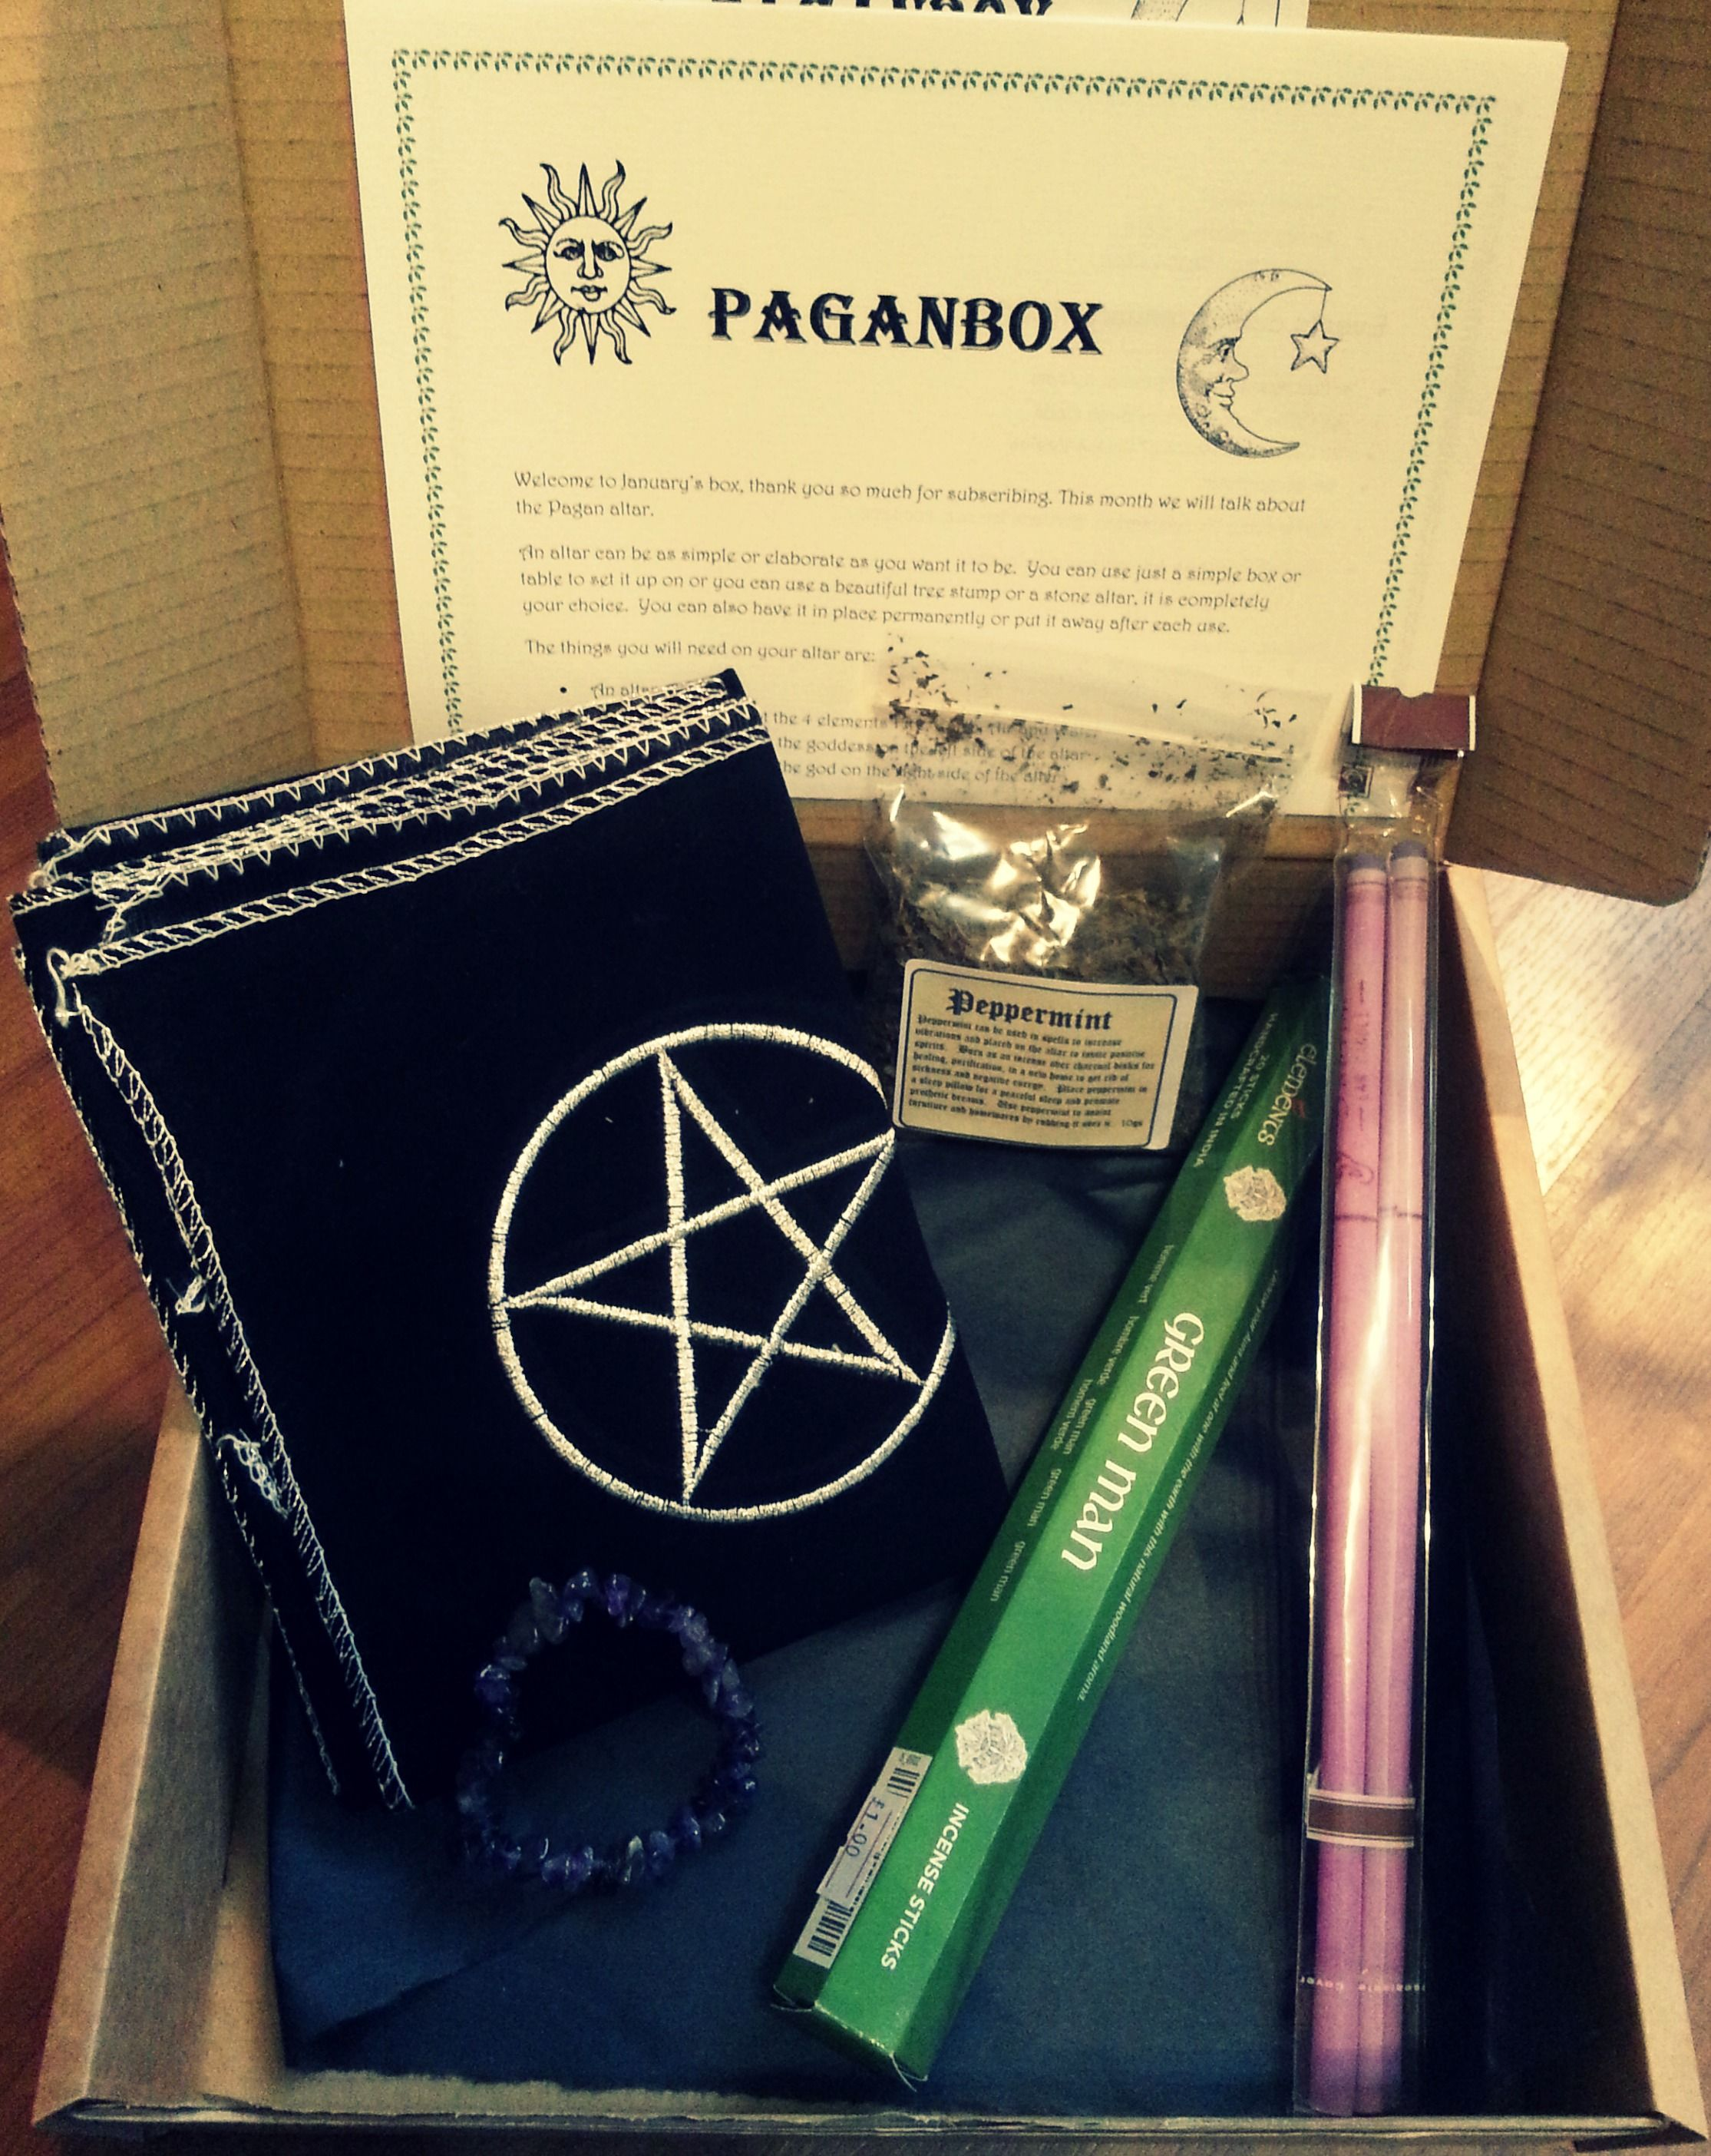 January Paganbox A Monthly Subscription Box From Wwwpaganboxcouk That Includes